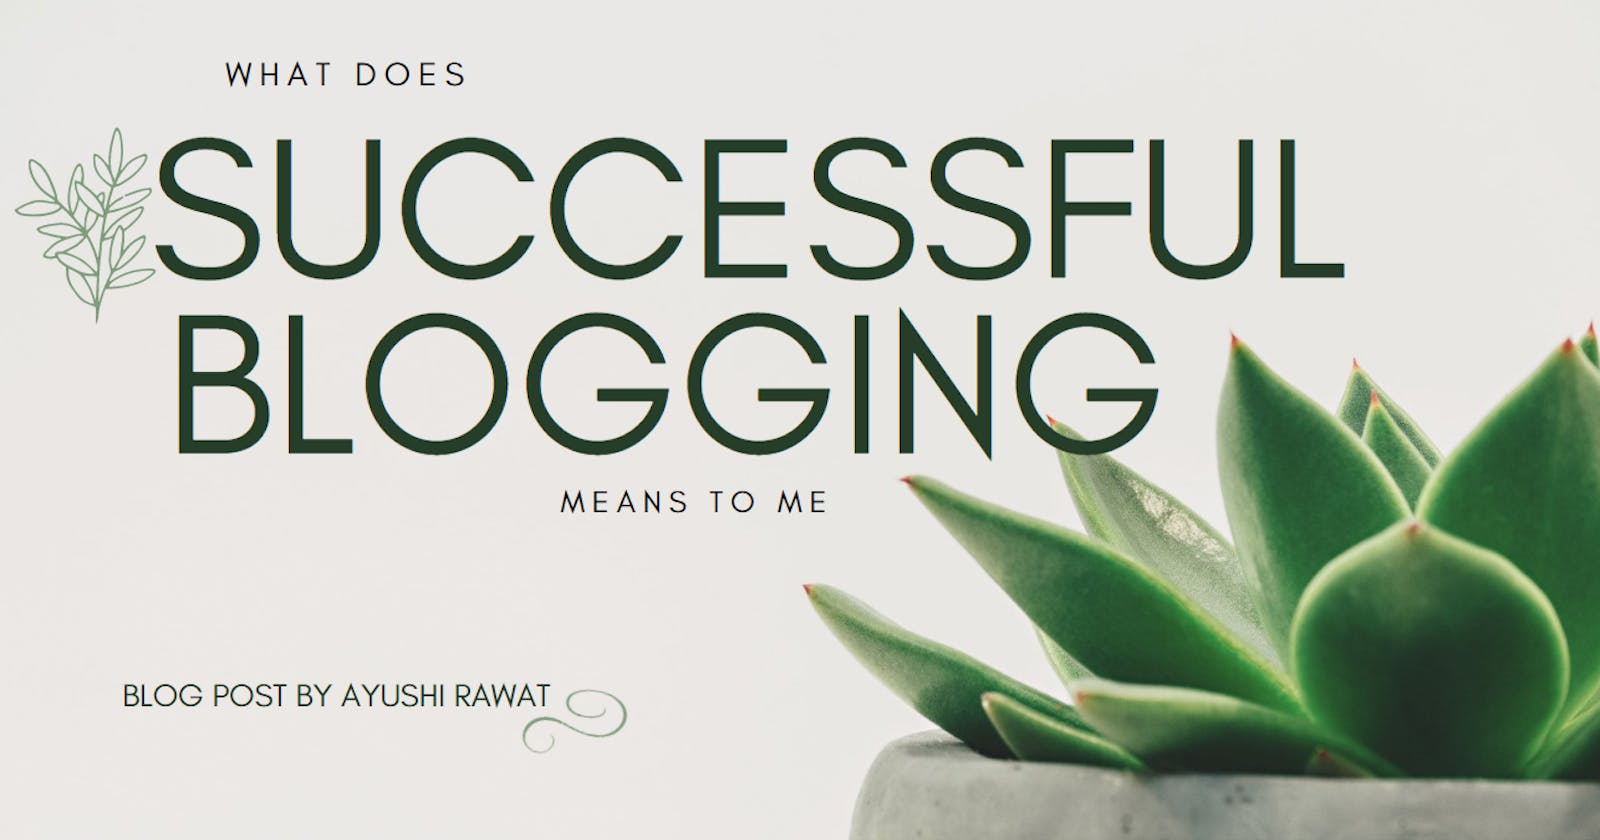 What does successful blogging means to me?